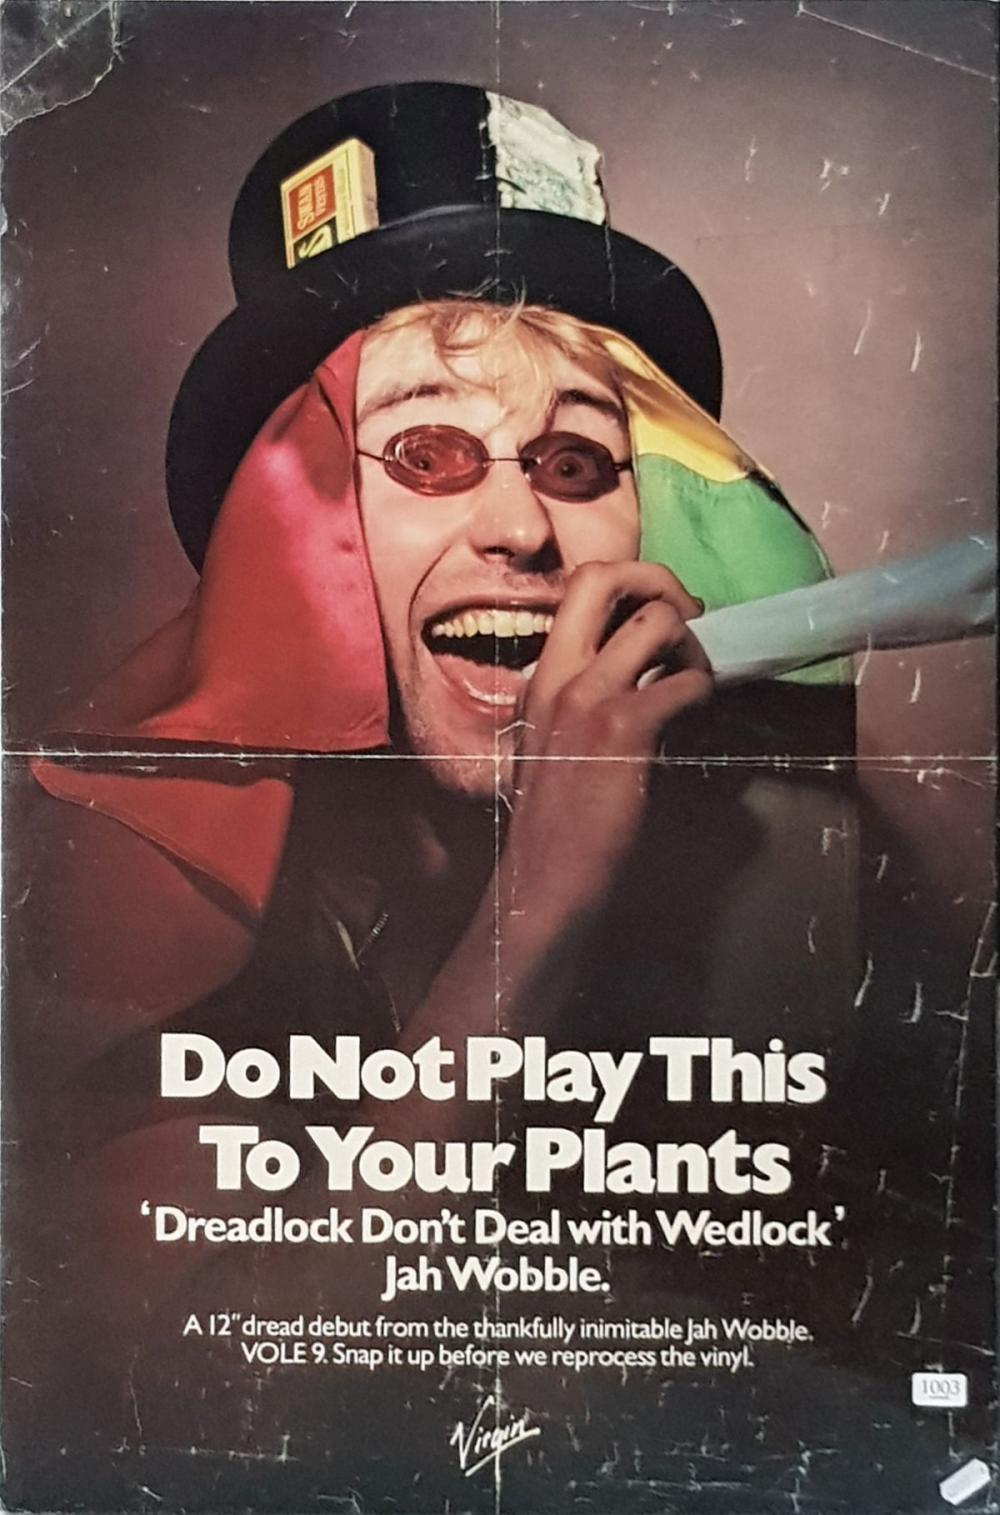 Vintage 'DO NOT PLAY THIS TO YOUR PLANTS' Poster